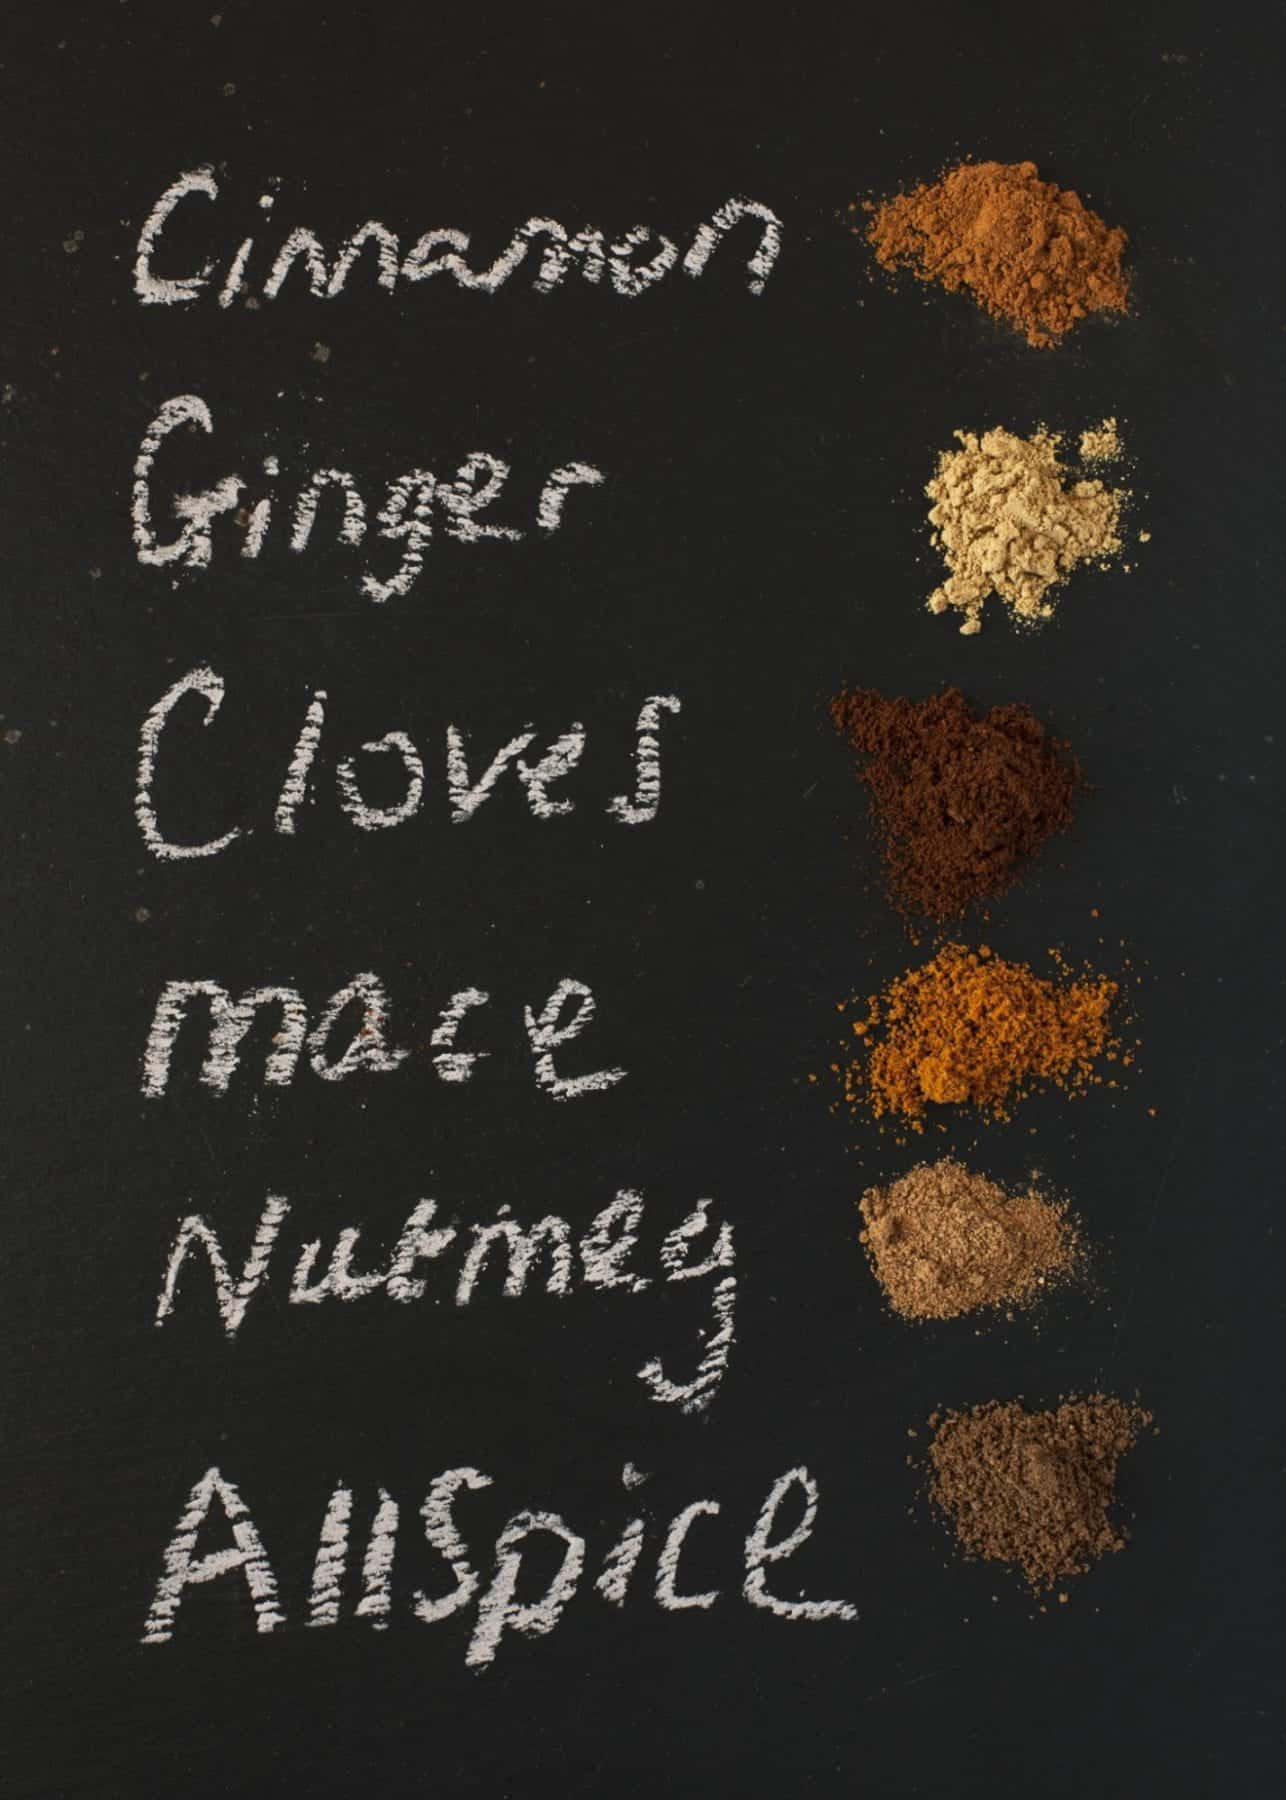 Ground spices on a blackboard with chalk written names alongside